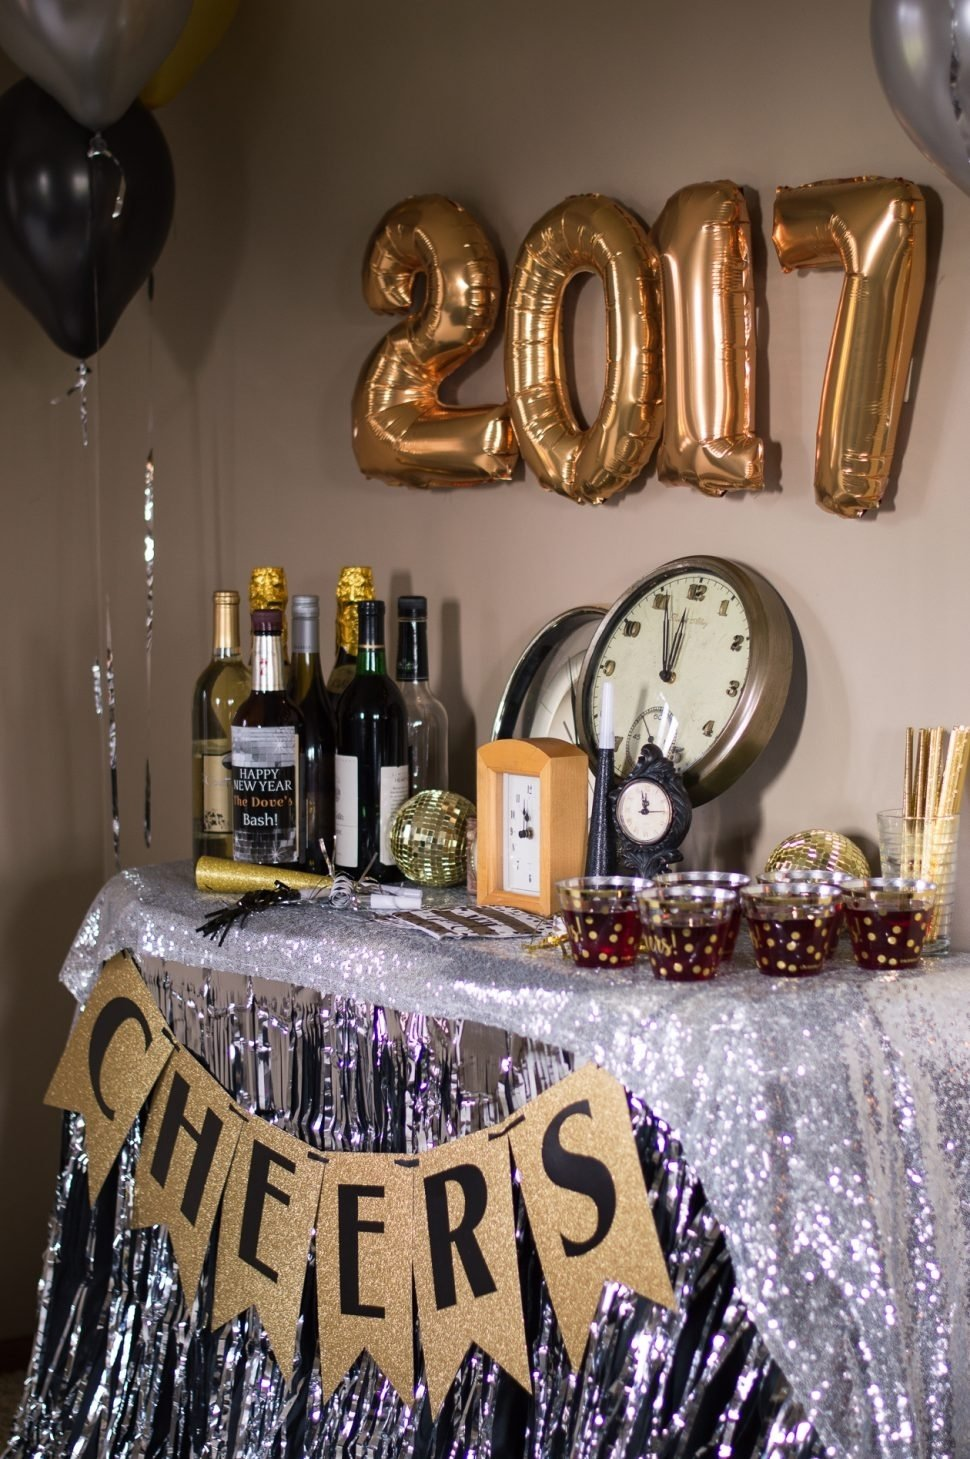 10 Great New Year Party Ideas At Home home decor lunar ideas years furnishing new room house party 2021